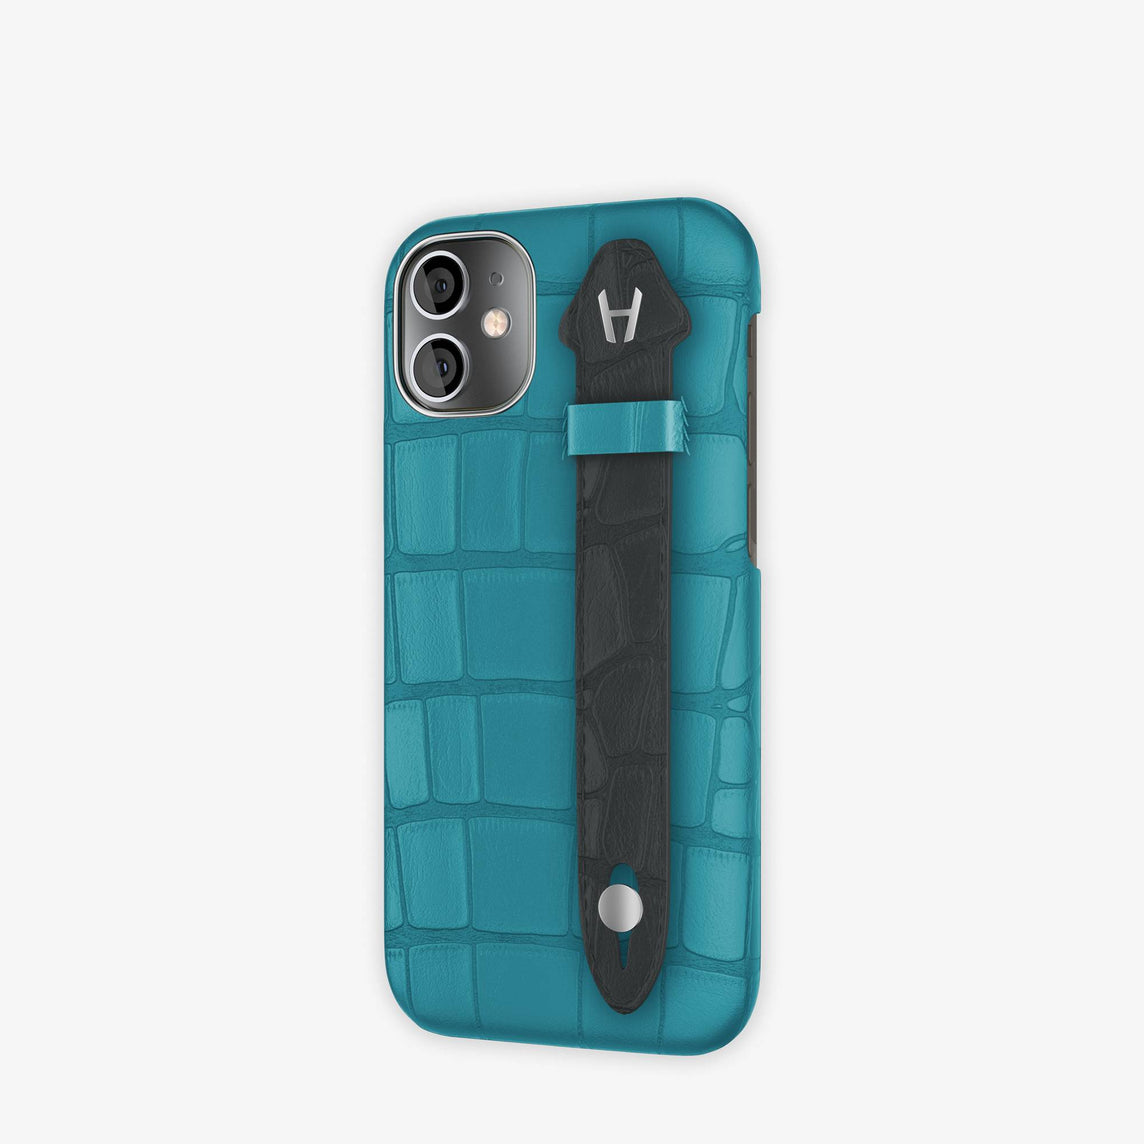 Alligator Side Finger Case iPhone 12 Mini | Blue Teal/Anthracite -Stainless Steel